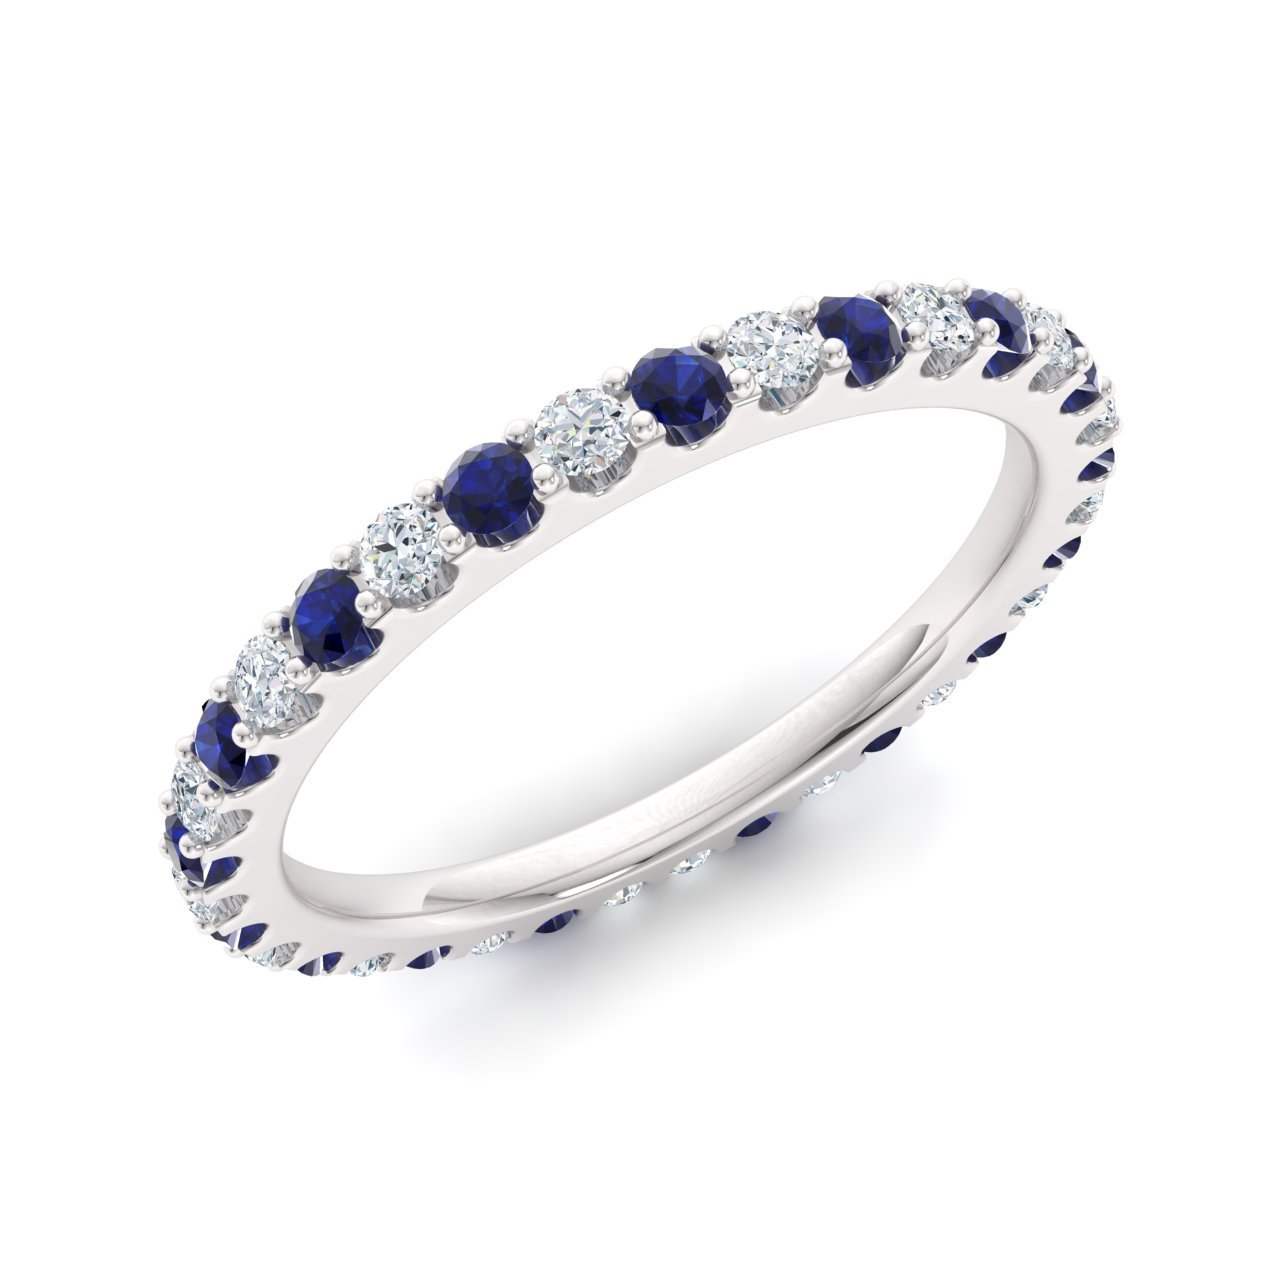 Diamondere Natural and Certified Blue Sapphire and Diamond Wedding Ring in 14K White Gold   0.87 Carat Full Eternity Stackable Band for Women, US Size 8 by Diamondere